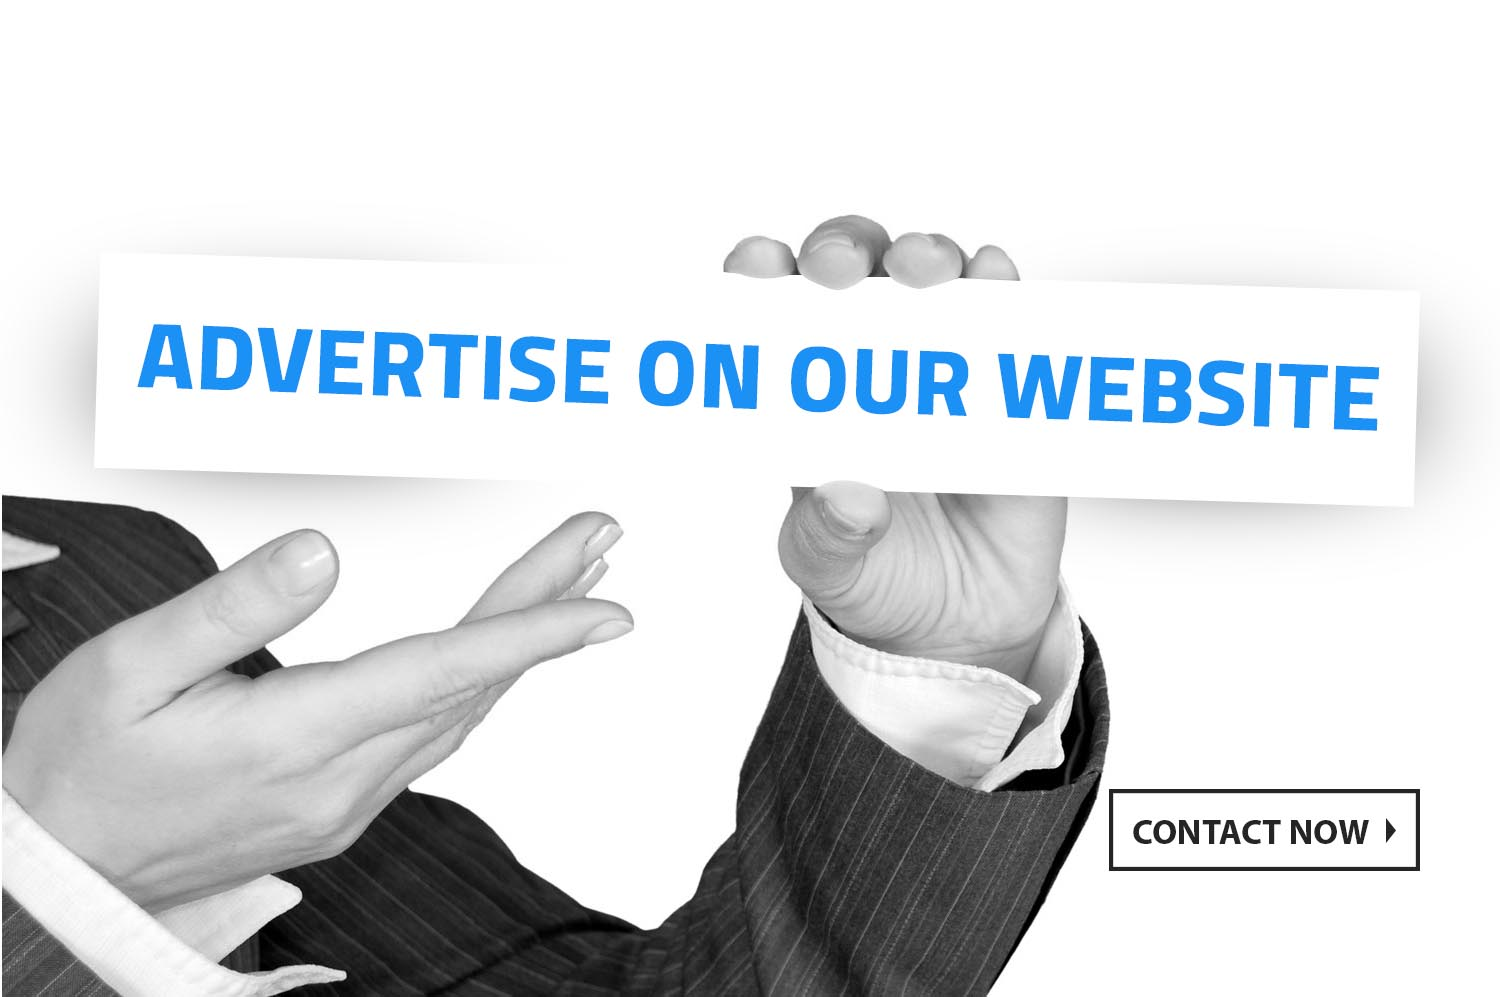 Advertise-on-our-website